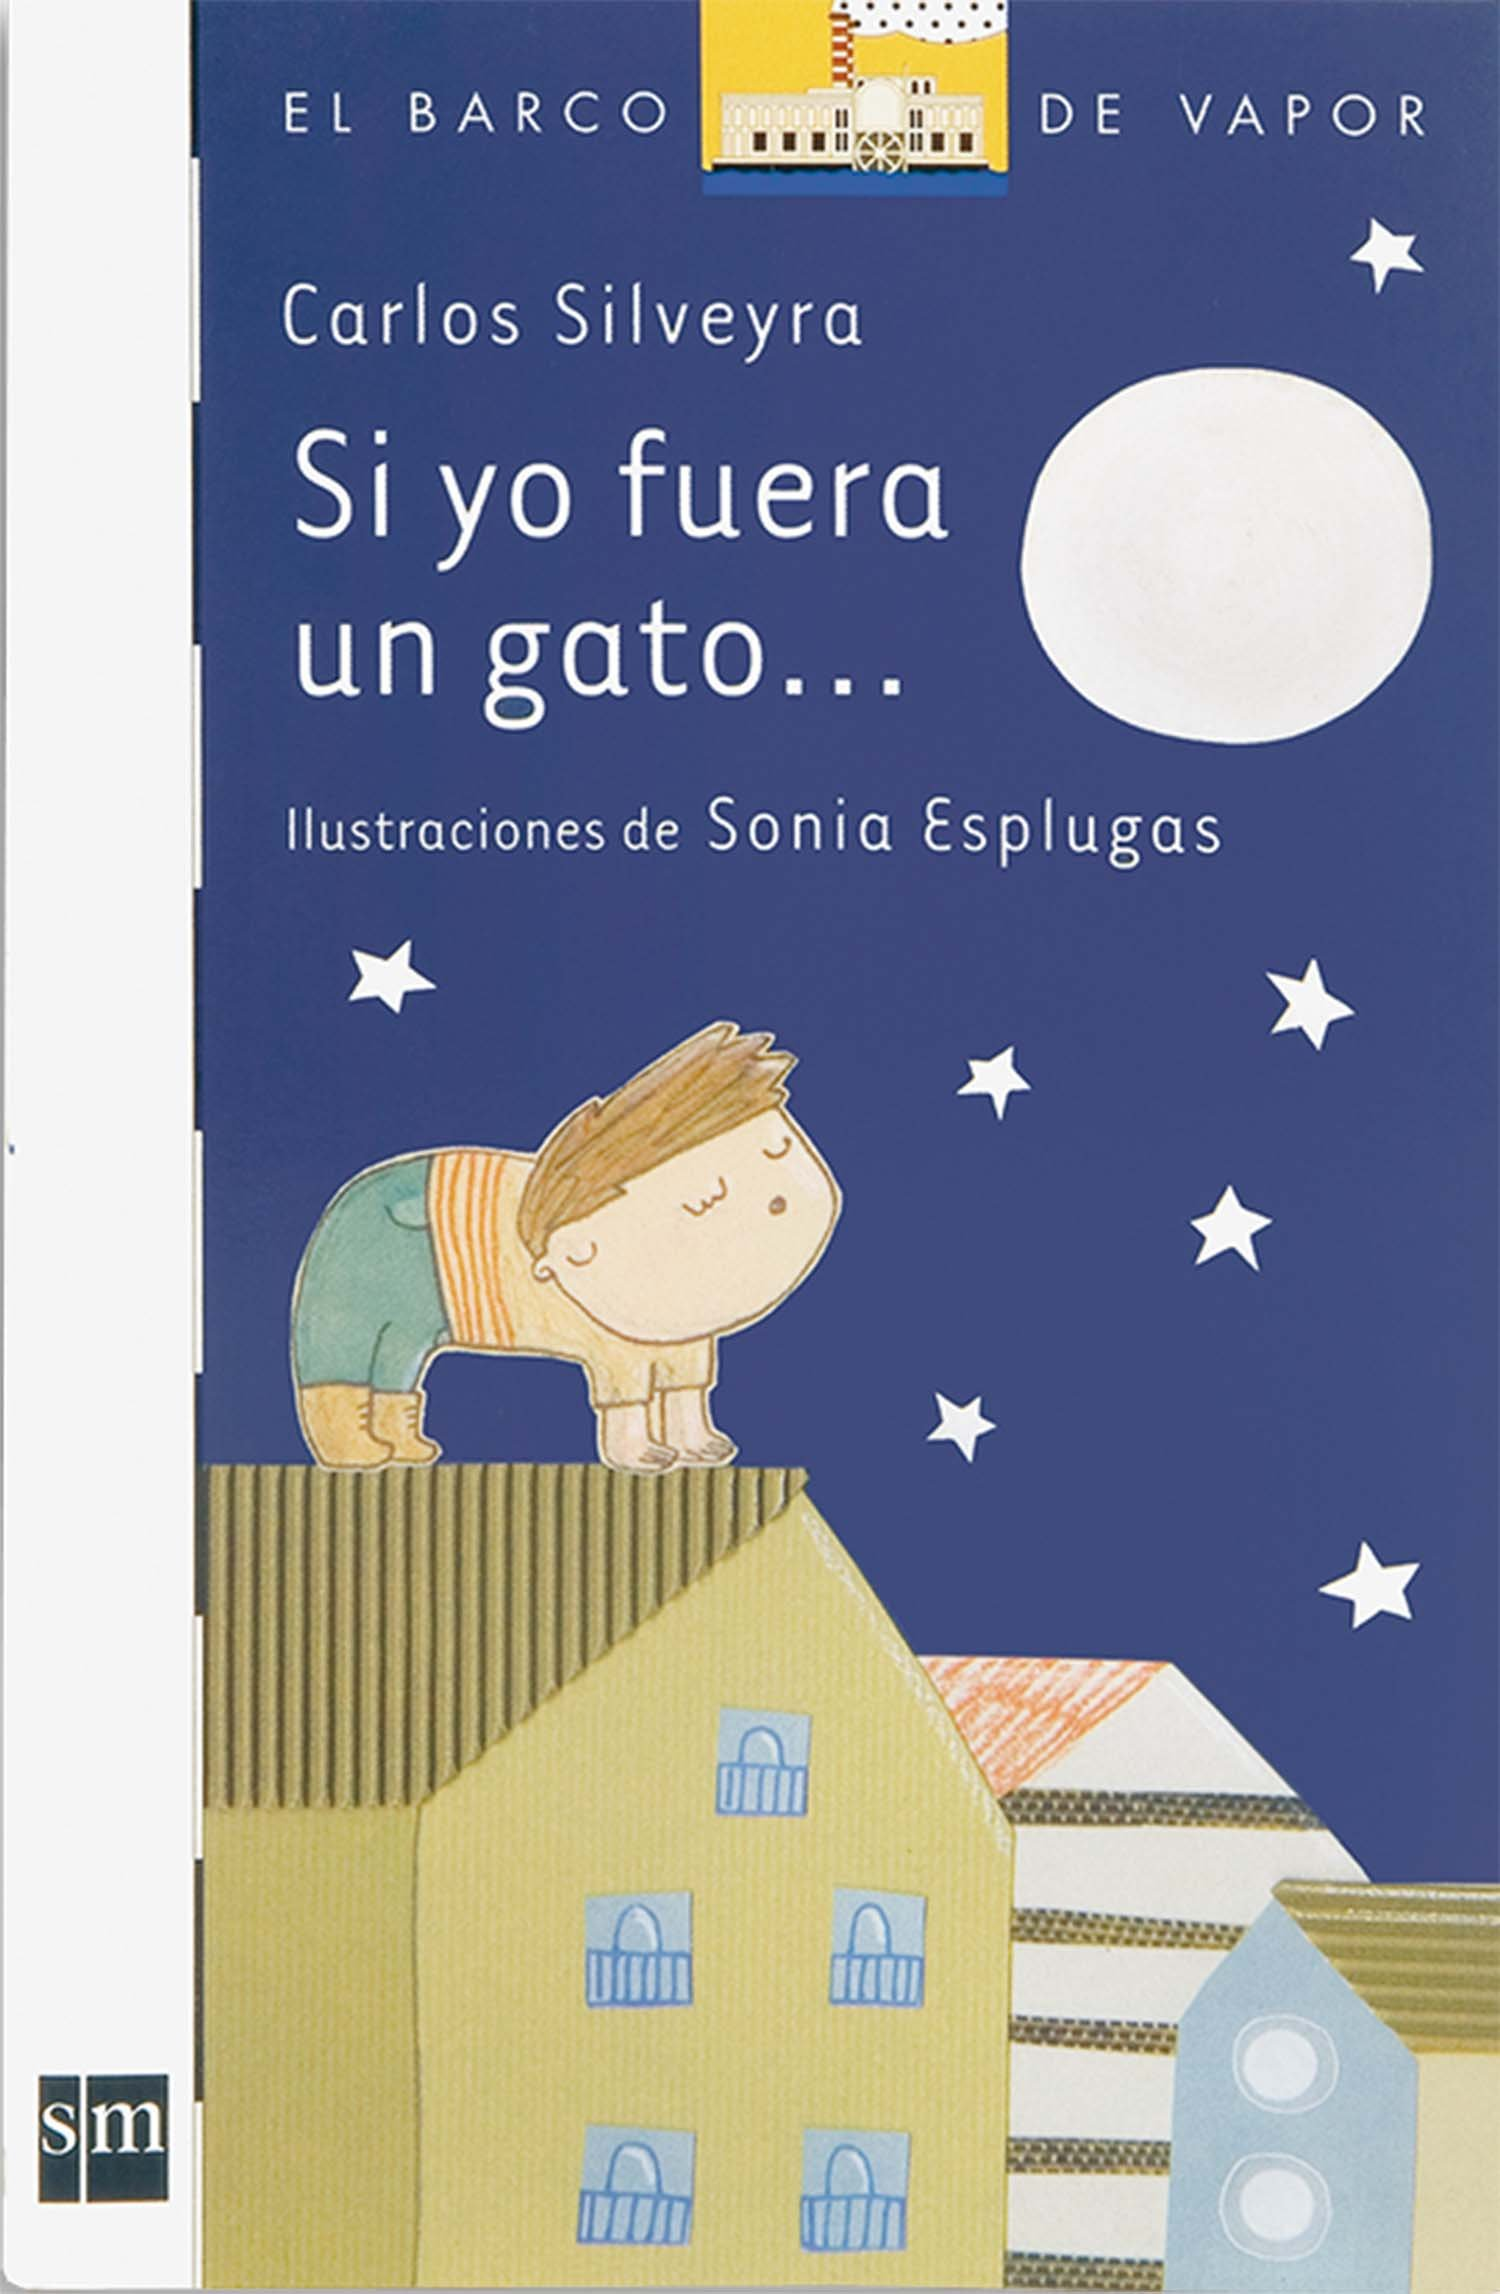 Si yo fuera gato / If I Were a Cat (El barco de vapor: serie blanca / The Steamboat: White Series) (Spanish Edition) (Spanish) Paperback – June 30, 2009